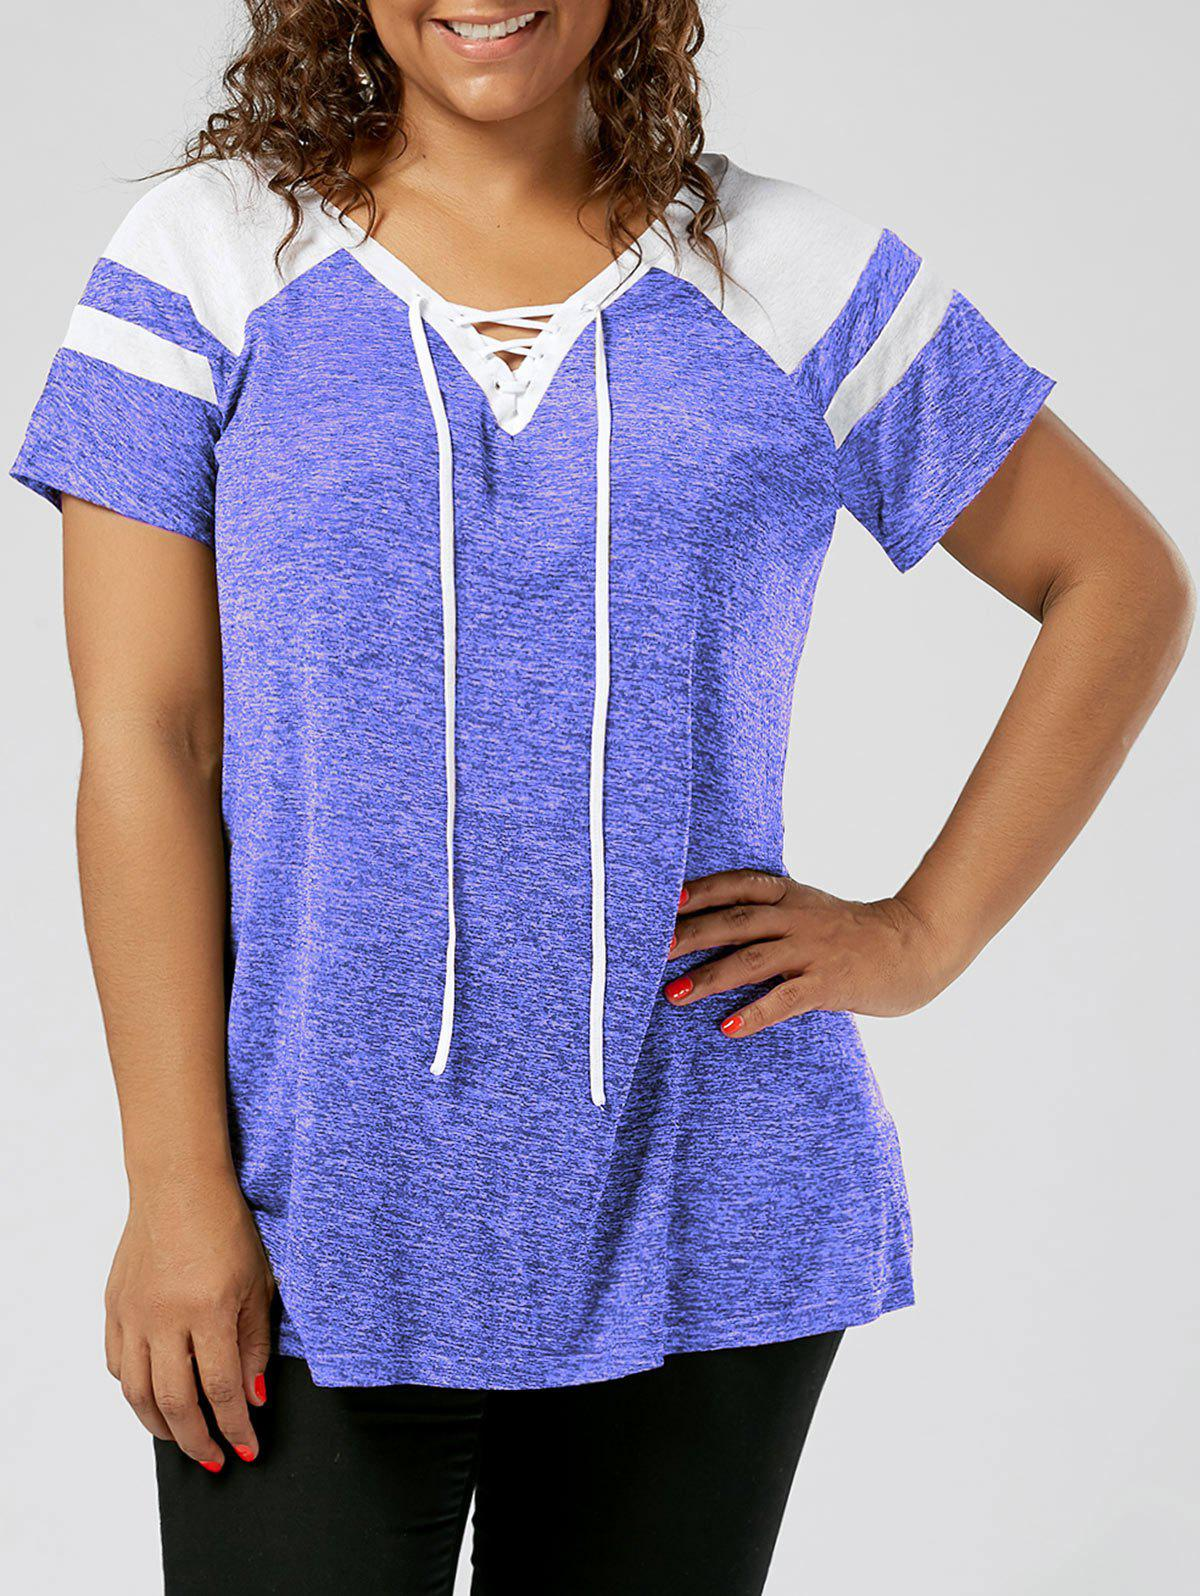 Plus Size Lace Up Raglan Sleeve TopWOMEN<br><br>Size: XL; Color: BLUE AND WHITE; Material: Polyester,Spandex; Shirt Length: Long; Sleeve Length: Short; Collar: V-Neck; Style: Active; Season: Summer; Pattern Type: Others; Weight: 0.1900kg; Package Contents: 1 x Top;